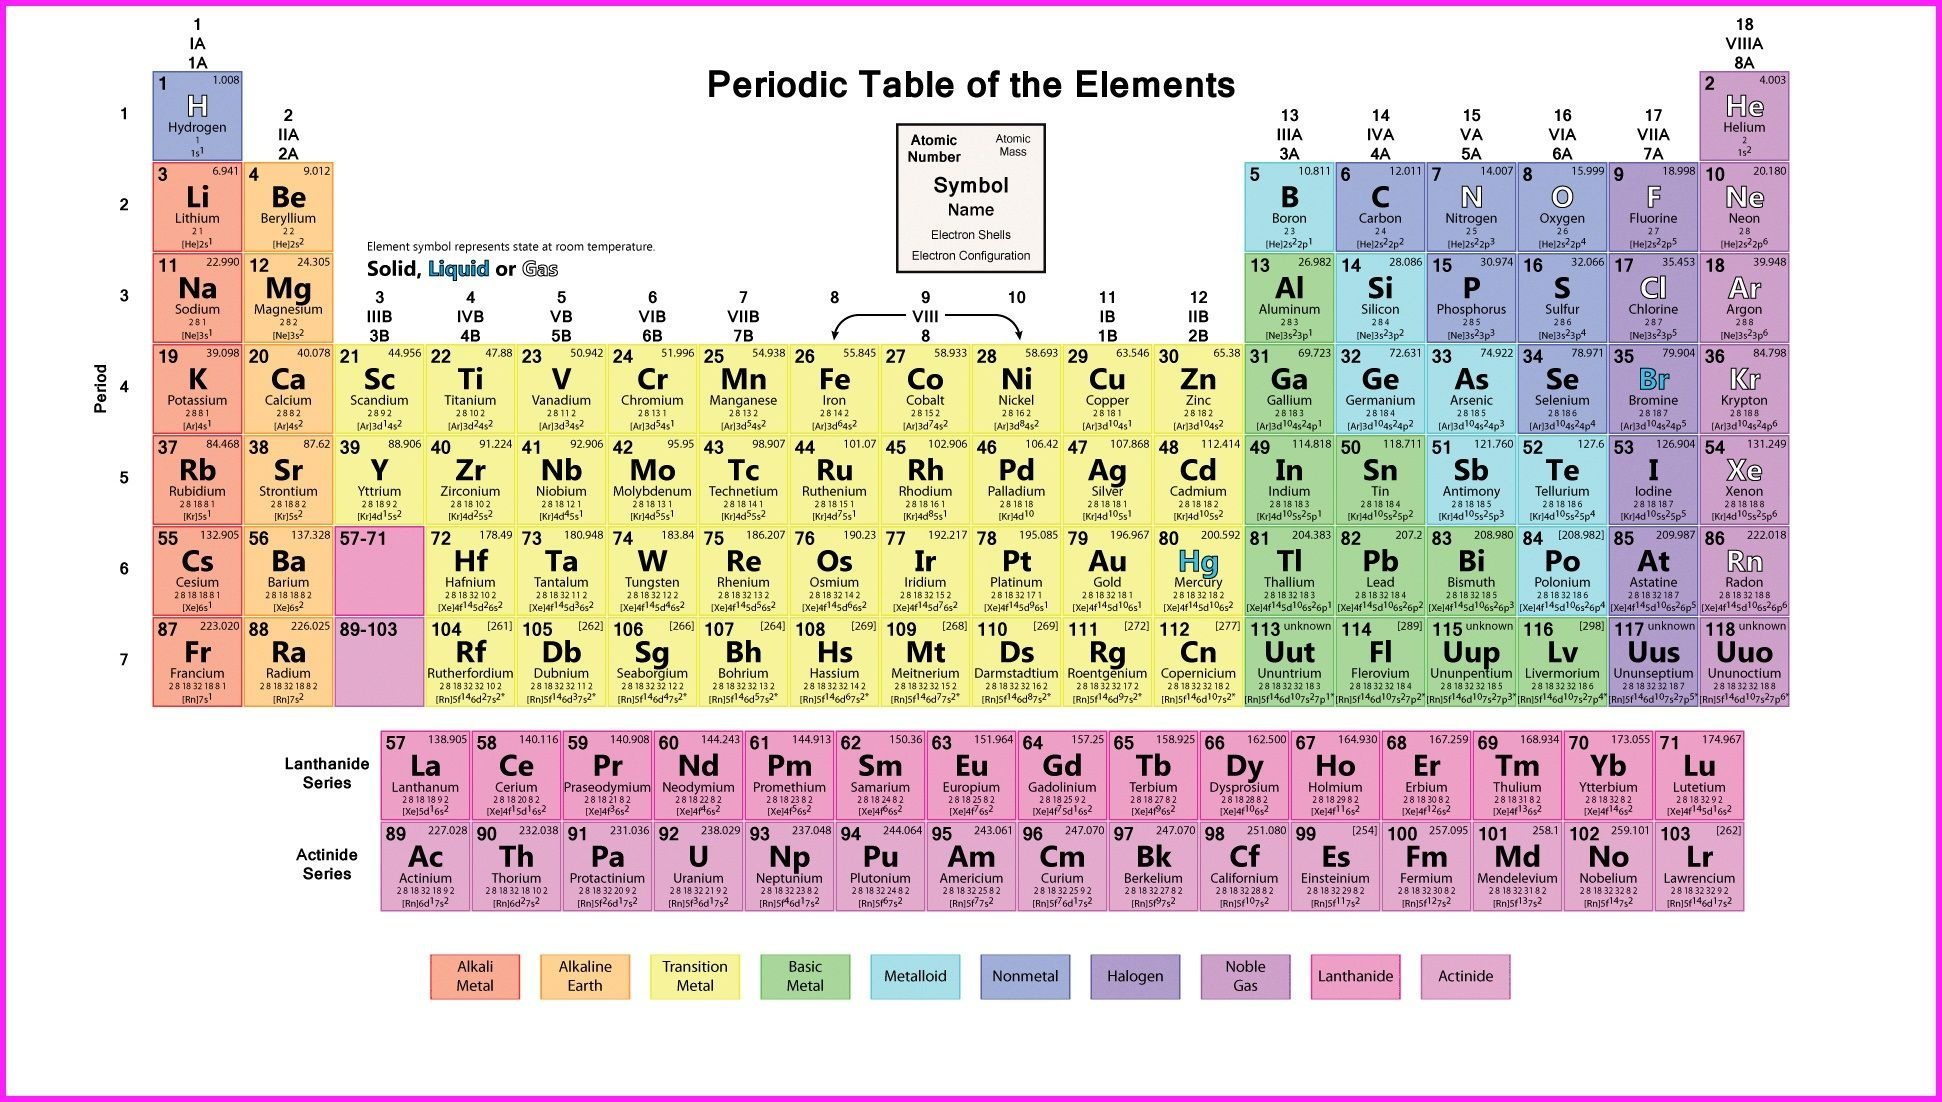 What Are The Names Of The 8 Groups In The Periodic Table